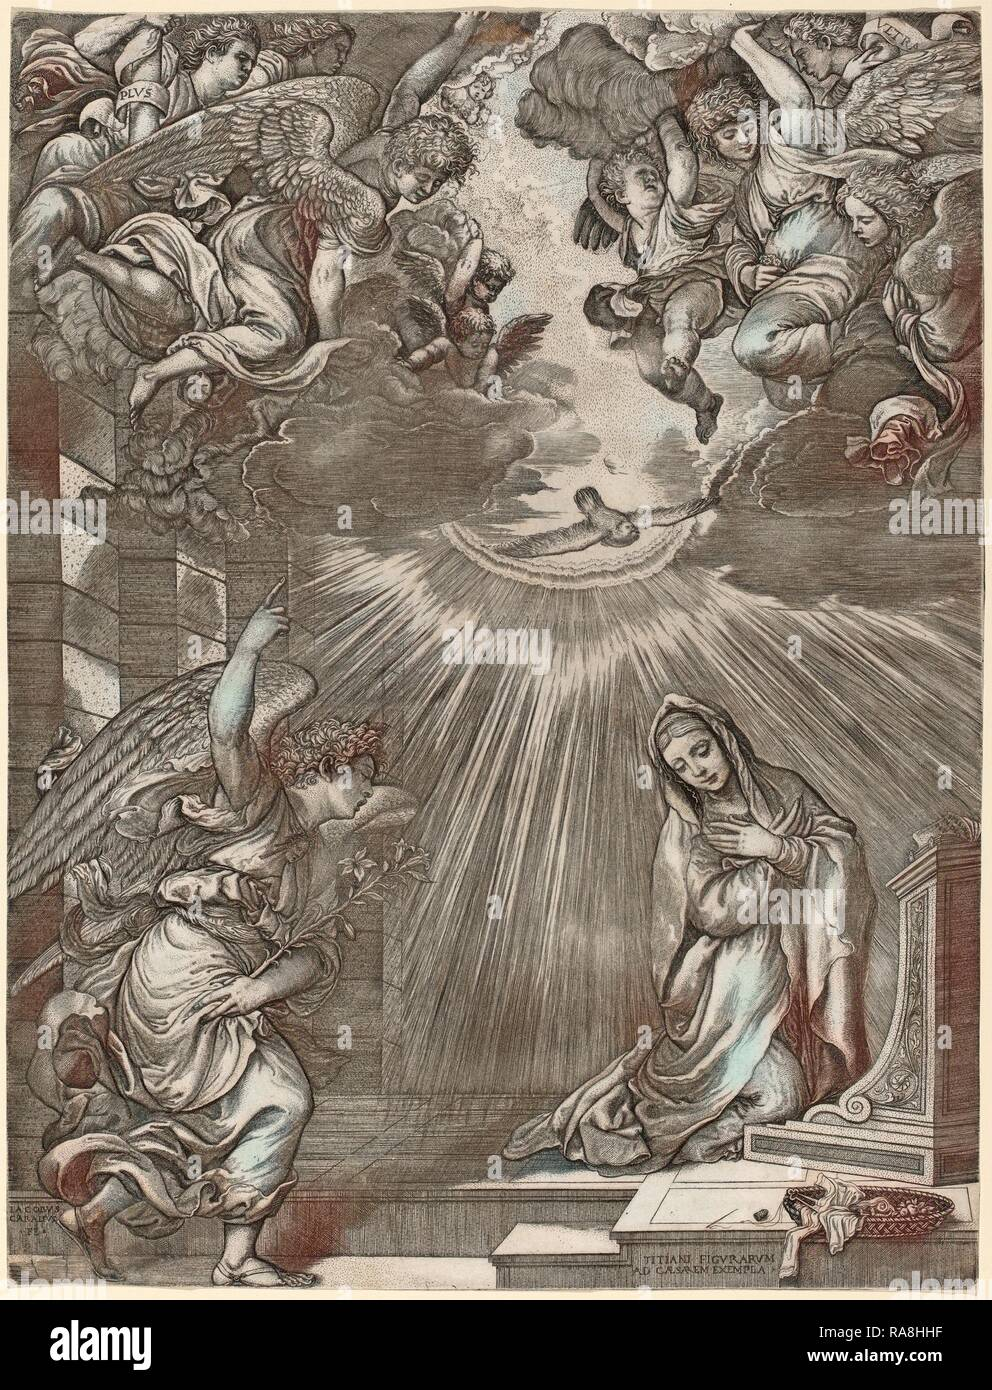 Gian Jacopo Caraglio after Titian (Italian, c. 1500 - 1565), The Annunciation, engraving. Reimagined - Stock Image